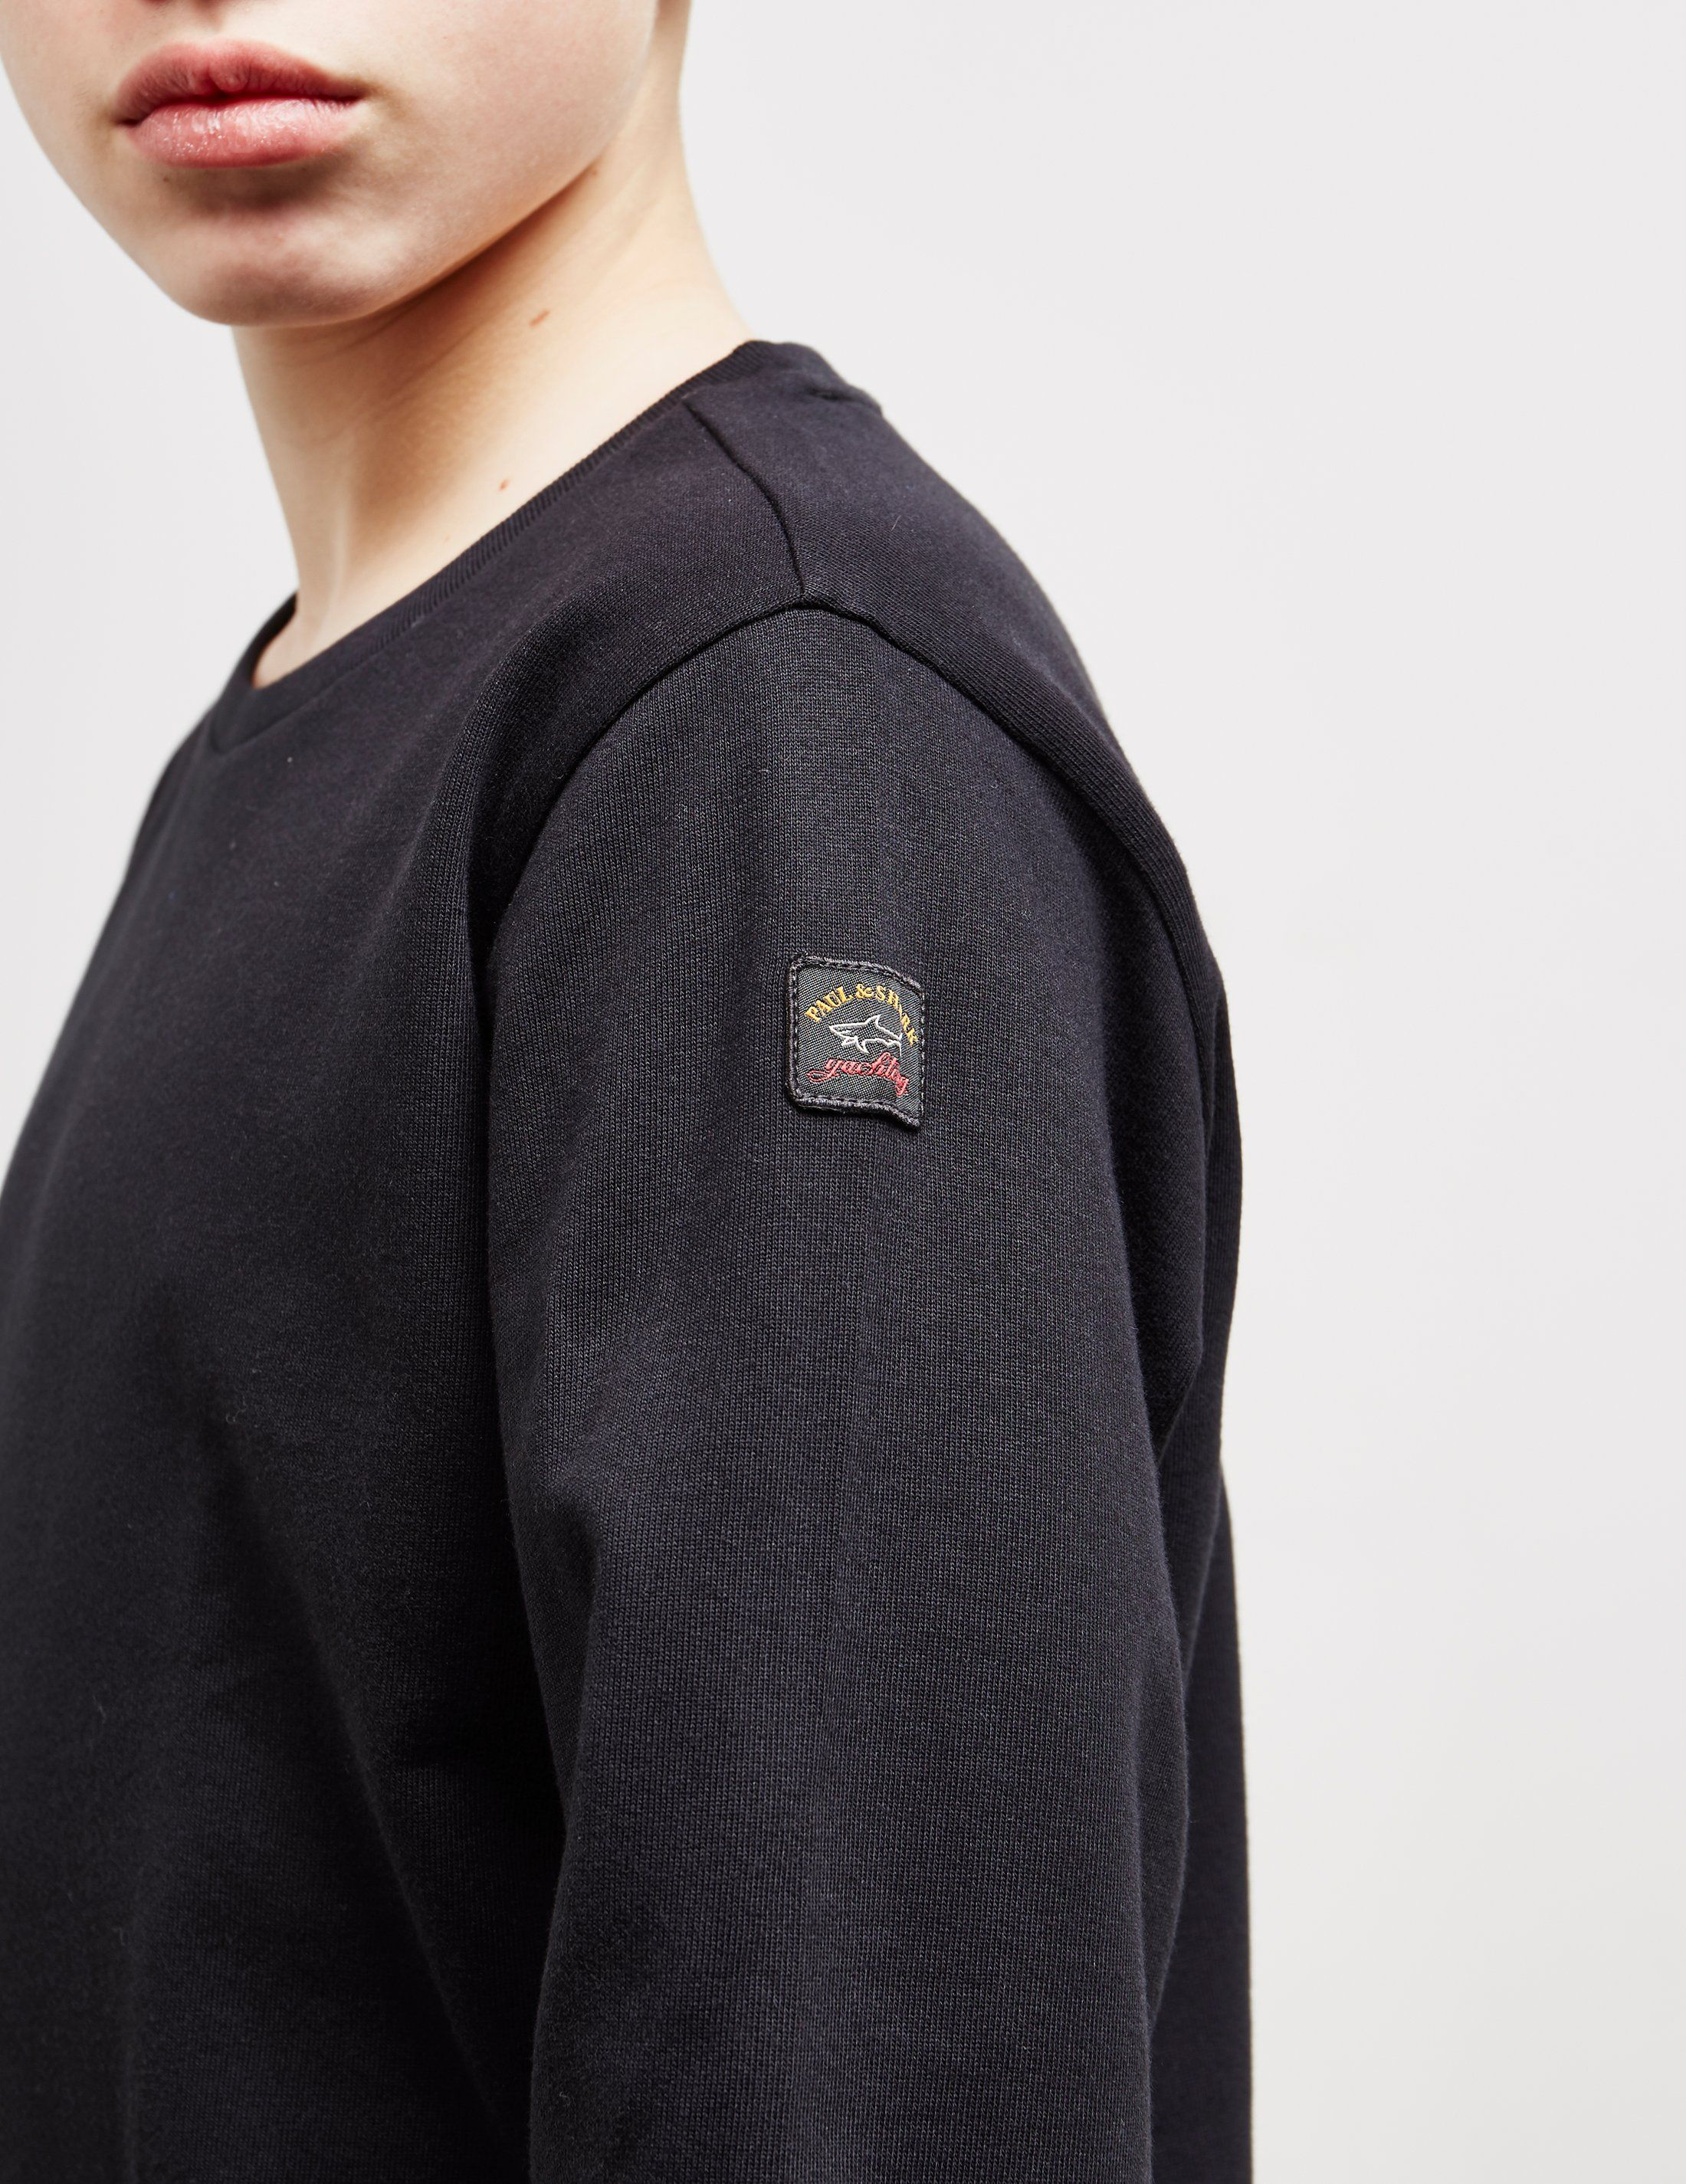 Paul and Shark Patch Sweatshirt